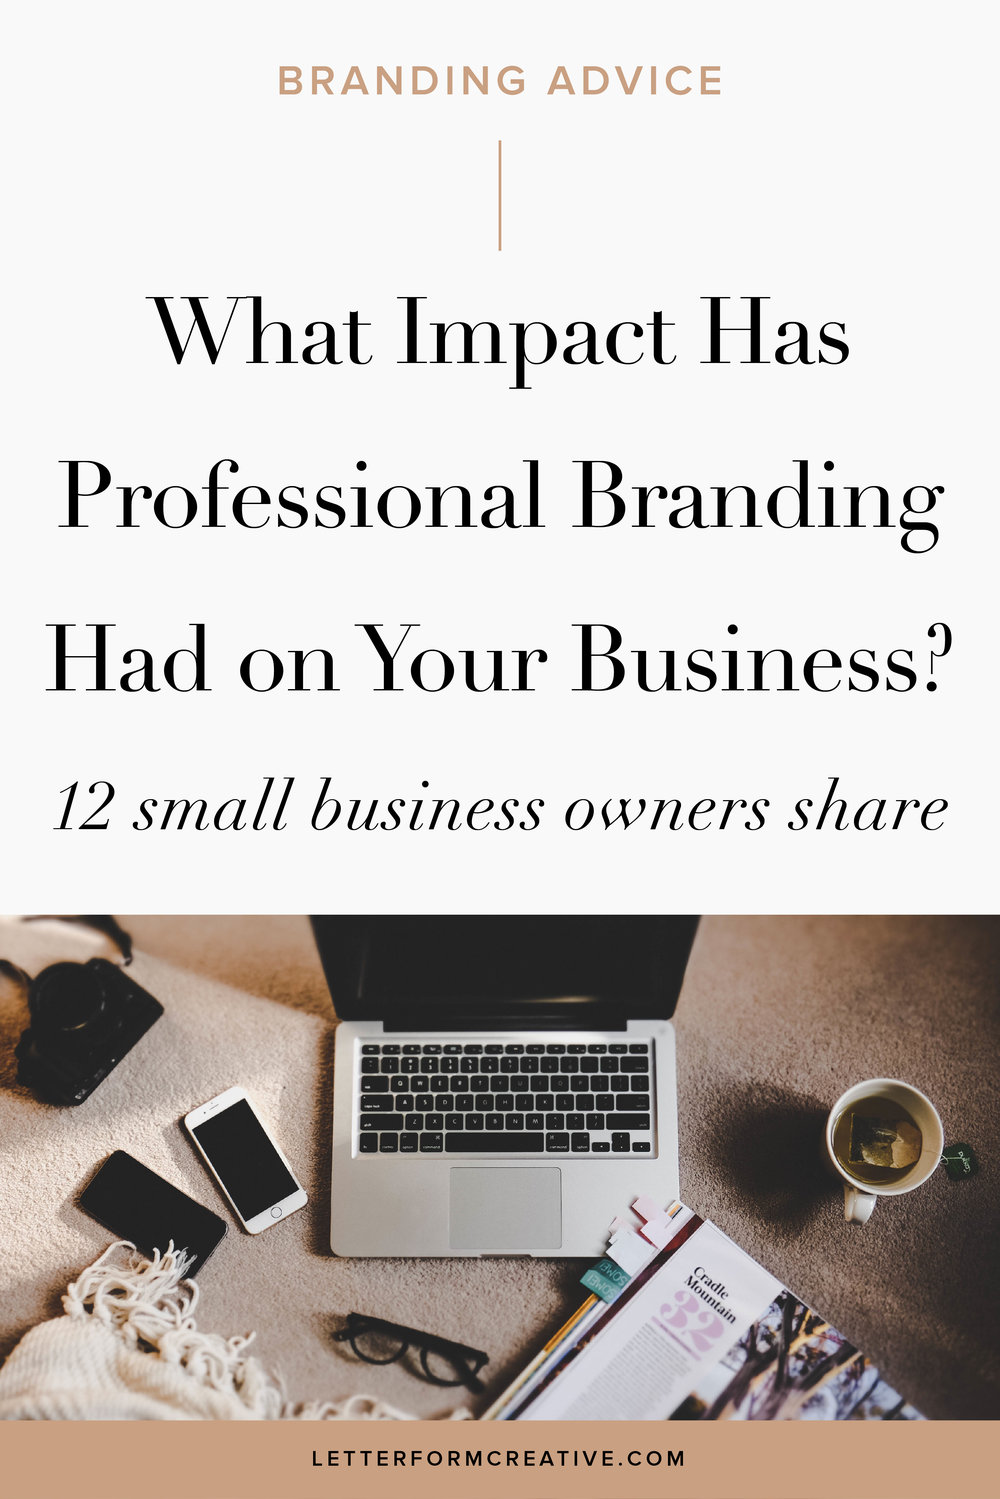 Are you still doing your own branding for your small business? Here is the incentive you need to hire a professional designer to design your brand identity. This blog interview with 12 small business owners provides the inspiration and motivation you need to invest in professional branding. The consensus is that it's the best business investment many have made. It will move your business forward, give you confidence, and change your mindset. Click through for more ideas and insights on how professional branding can take your business to the next level!